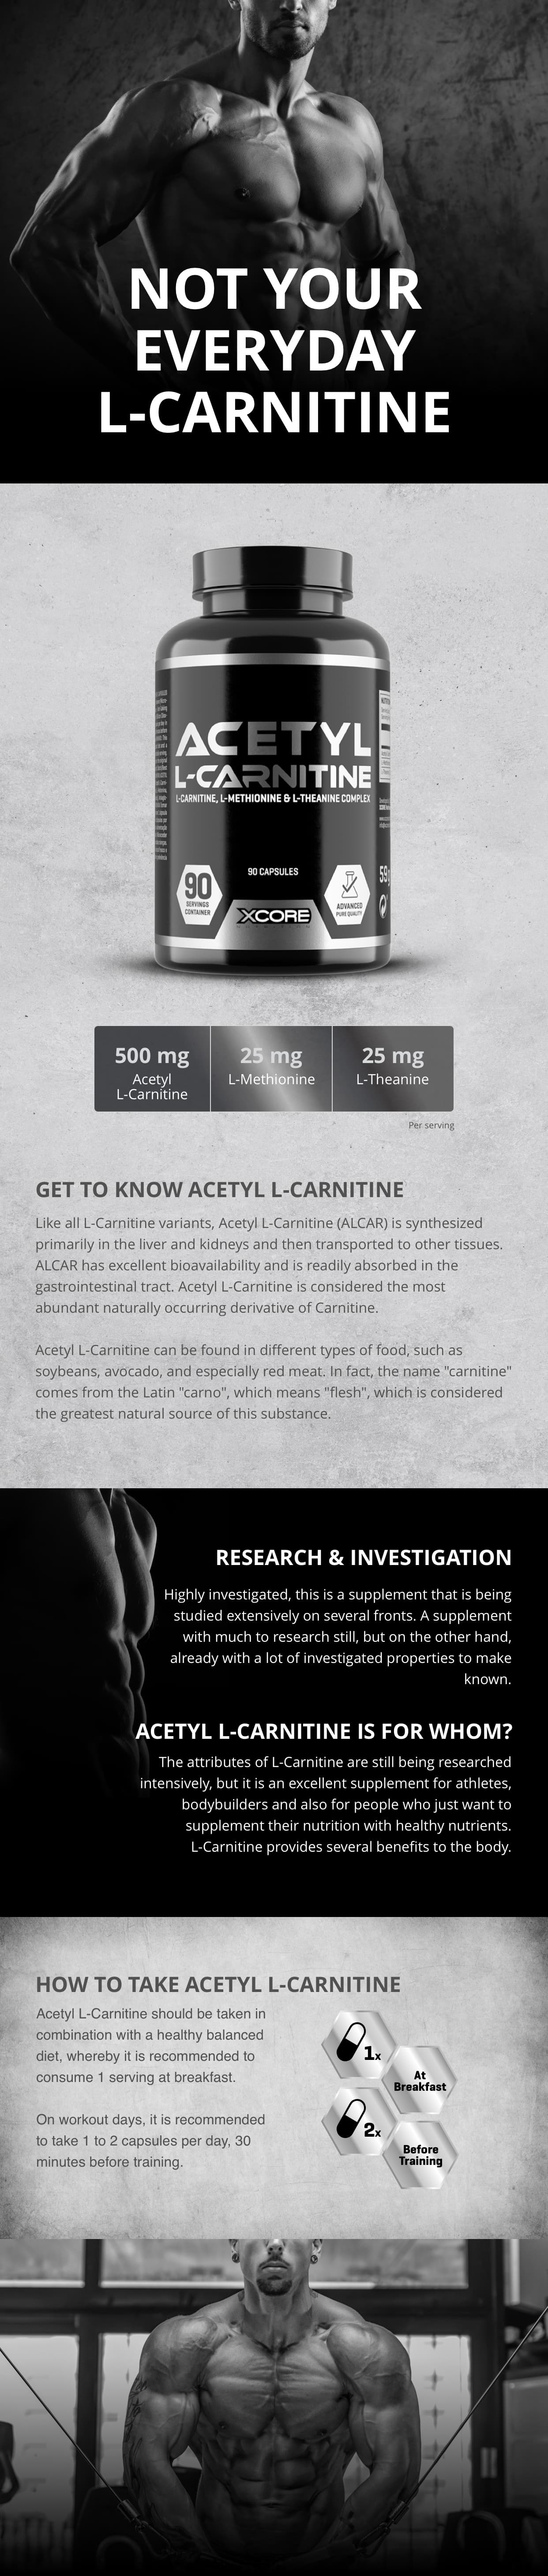 XCore -Acetyl L-Carnitine SS 90 cap